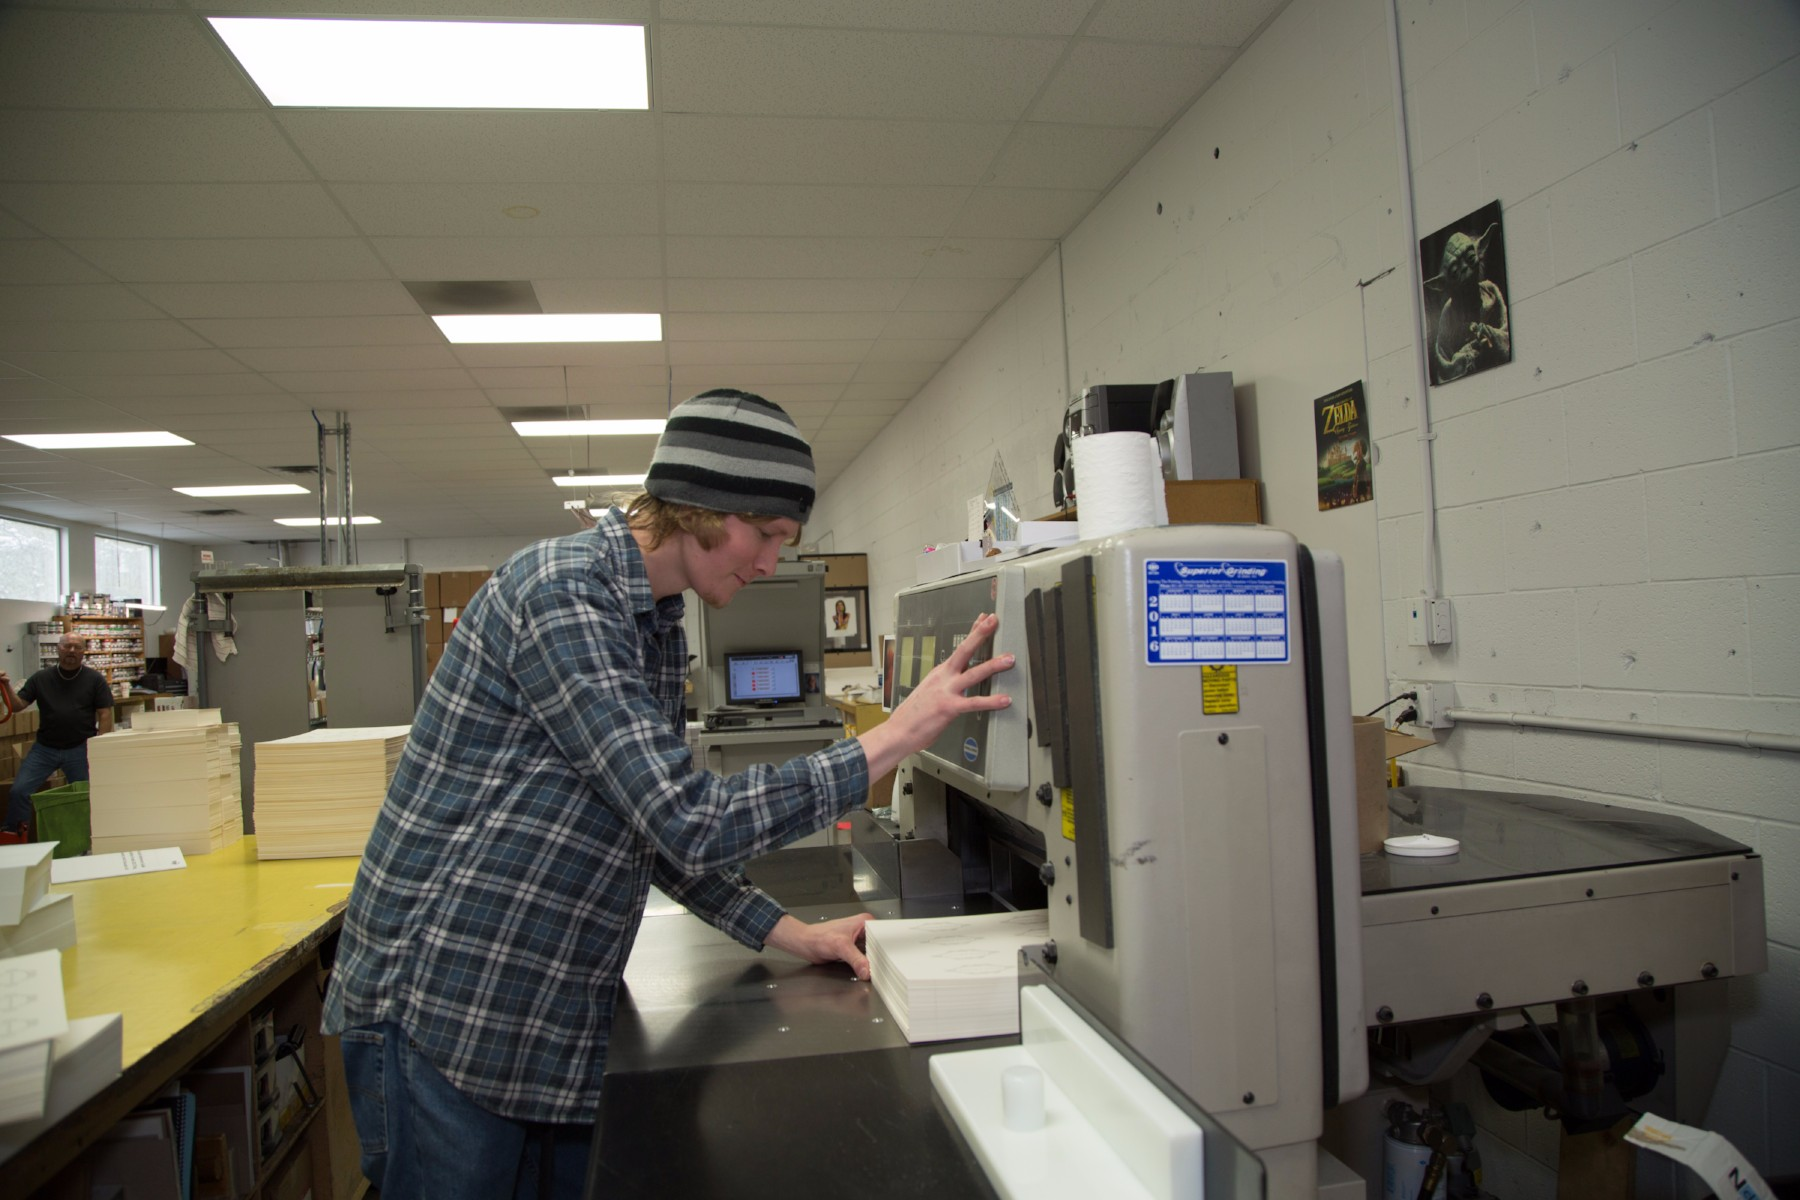 print shop worker applying finishing touches in salt lake city